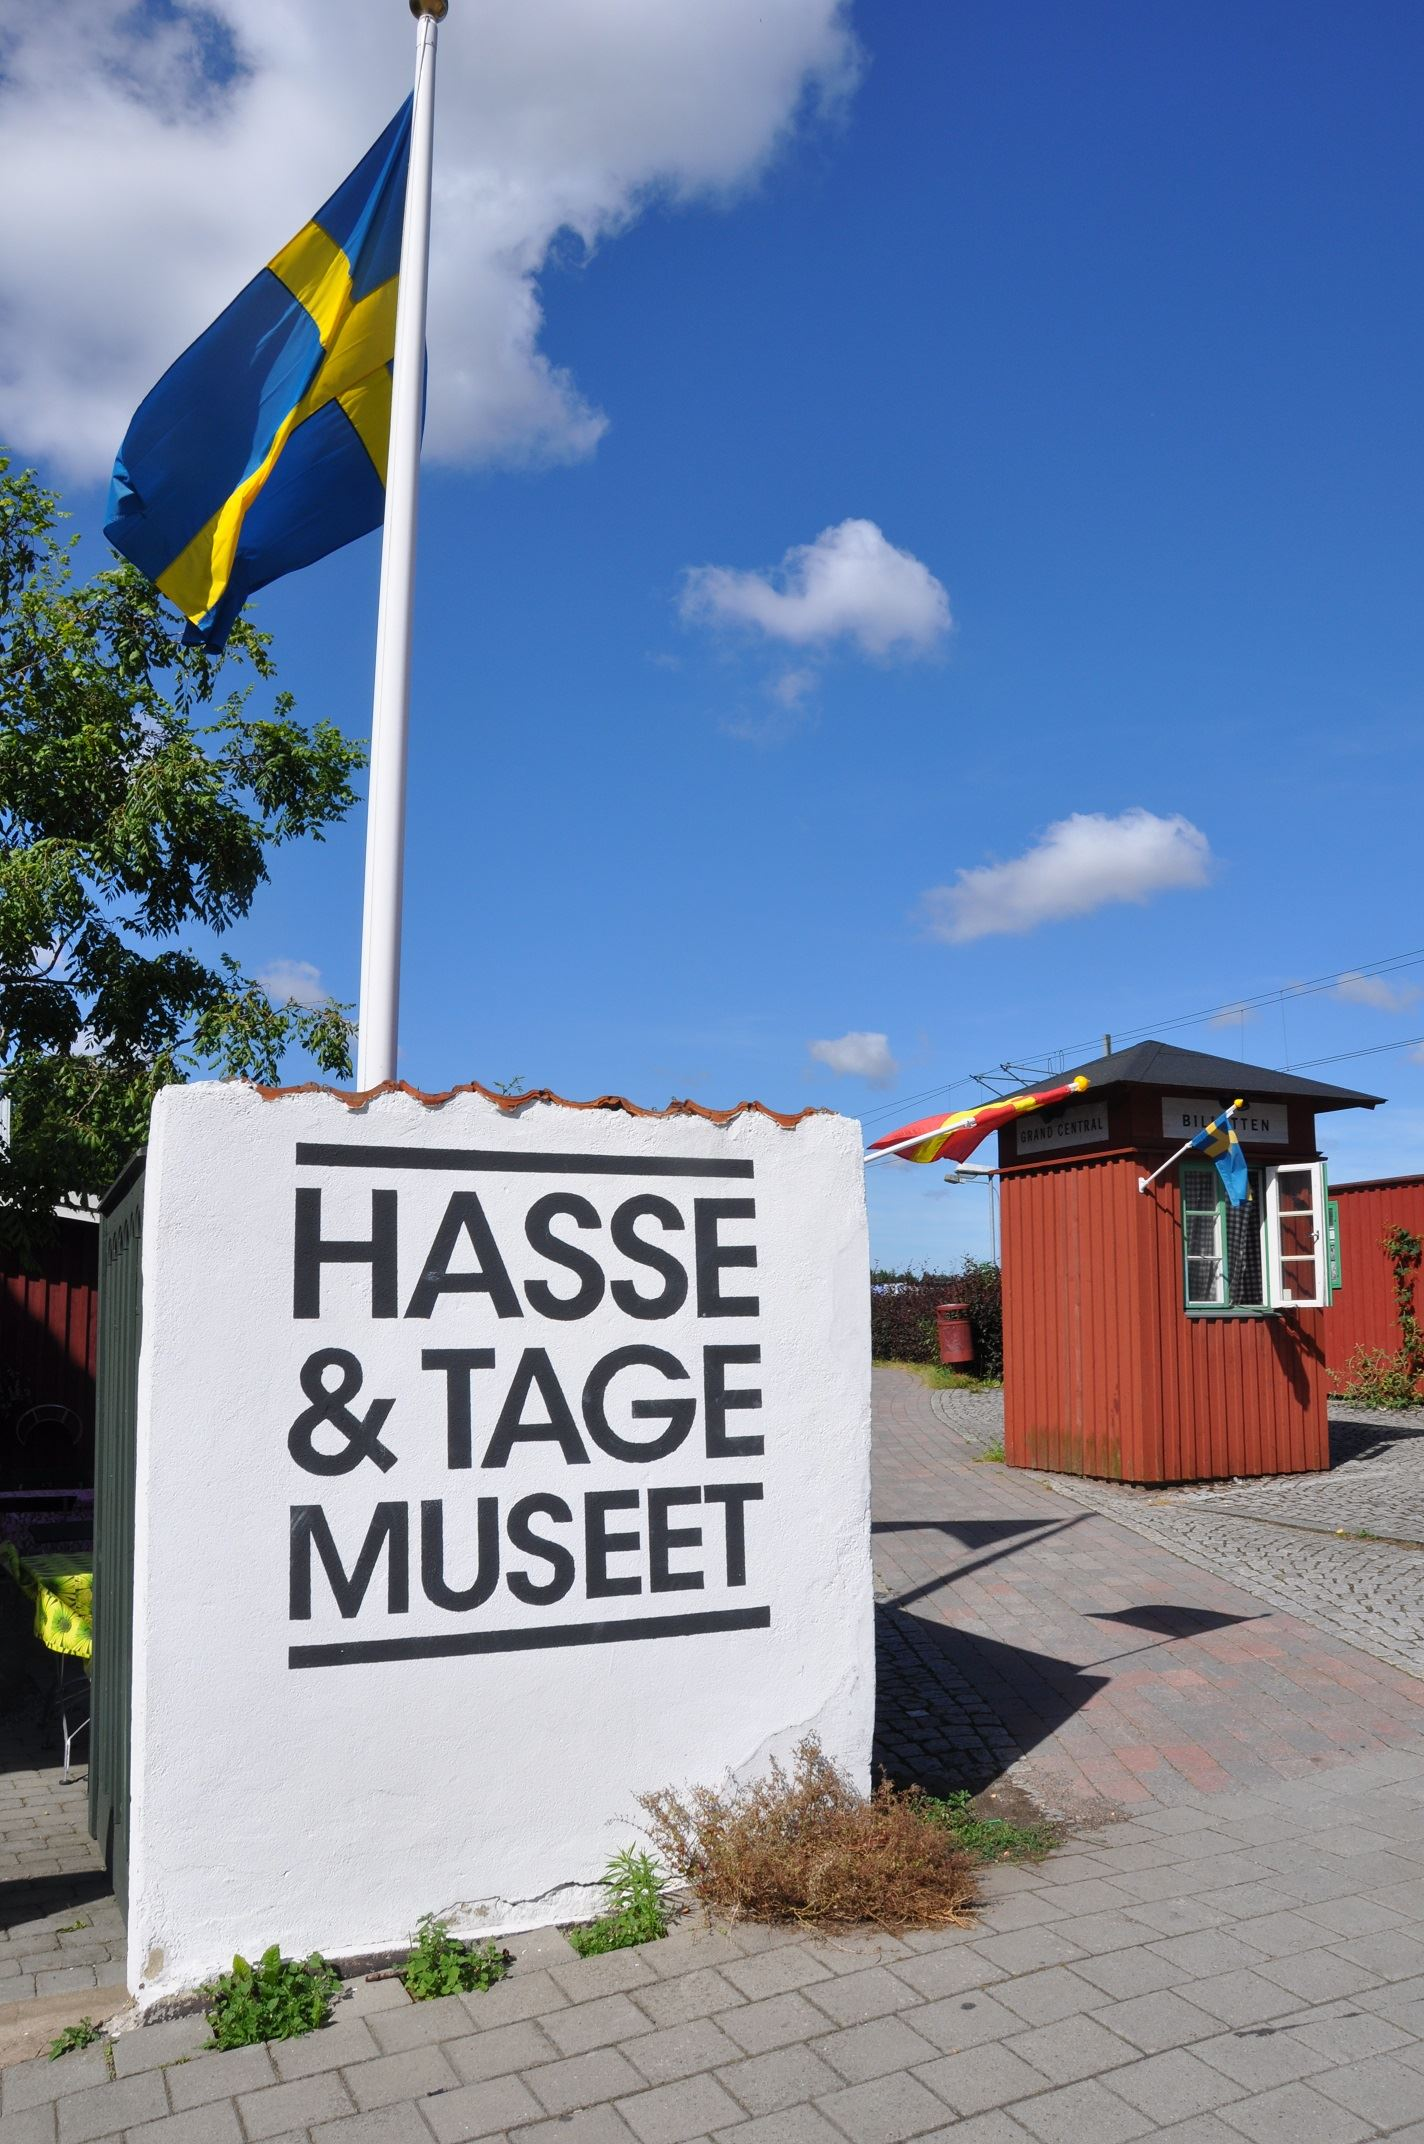 Foto: Elin Andersson, Hasse & Tage-museet